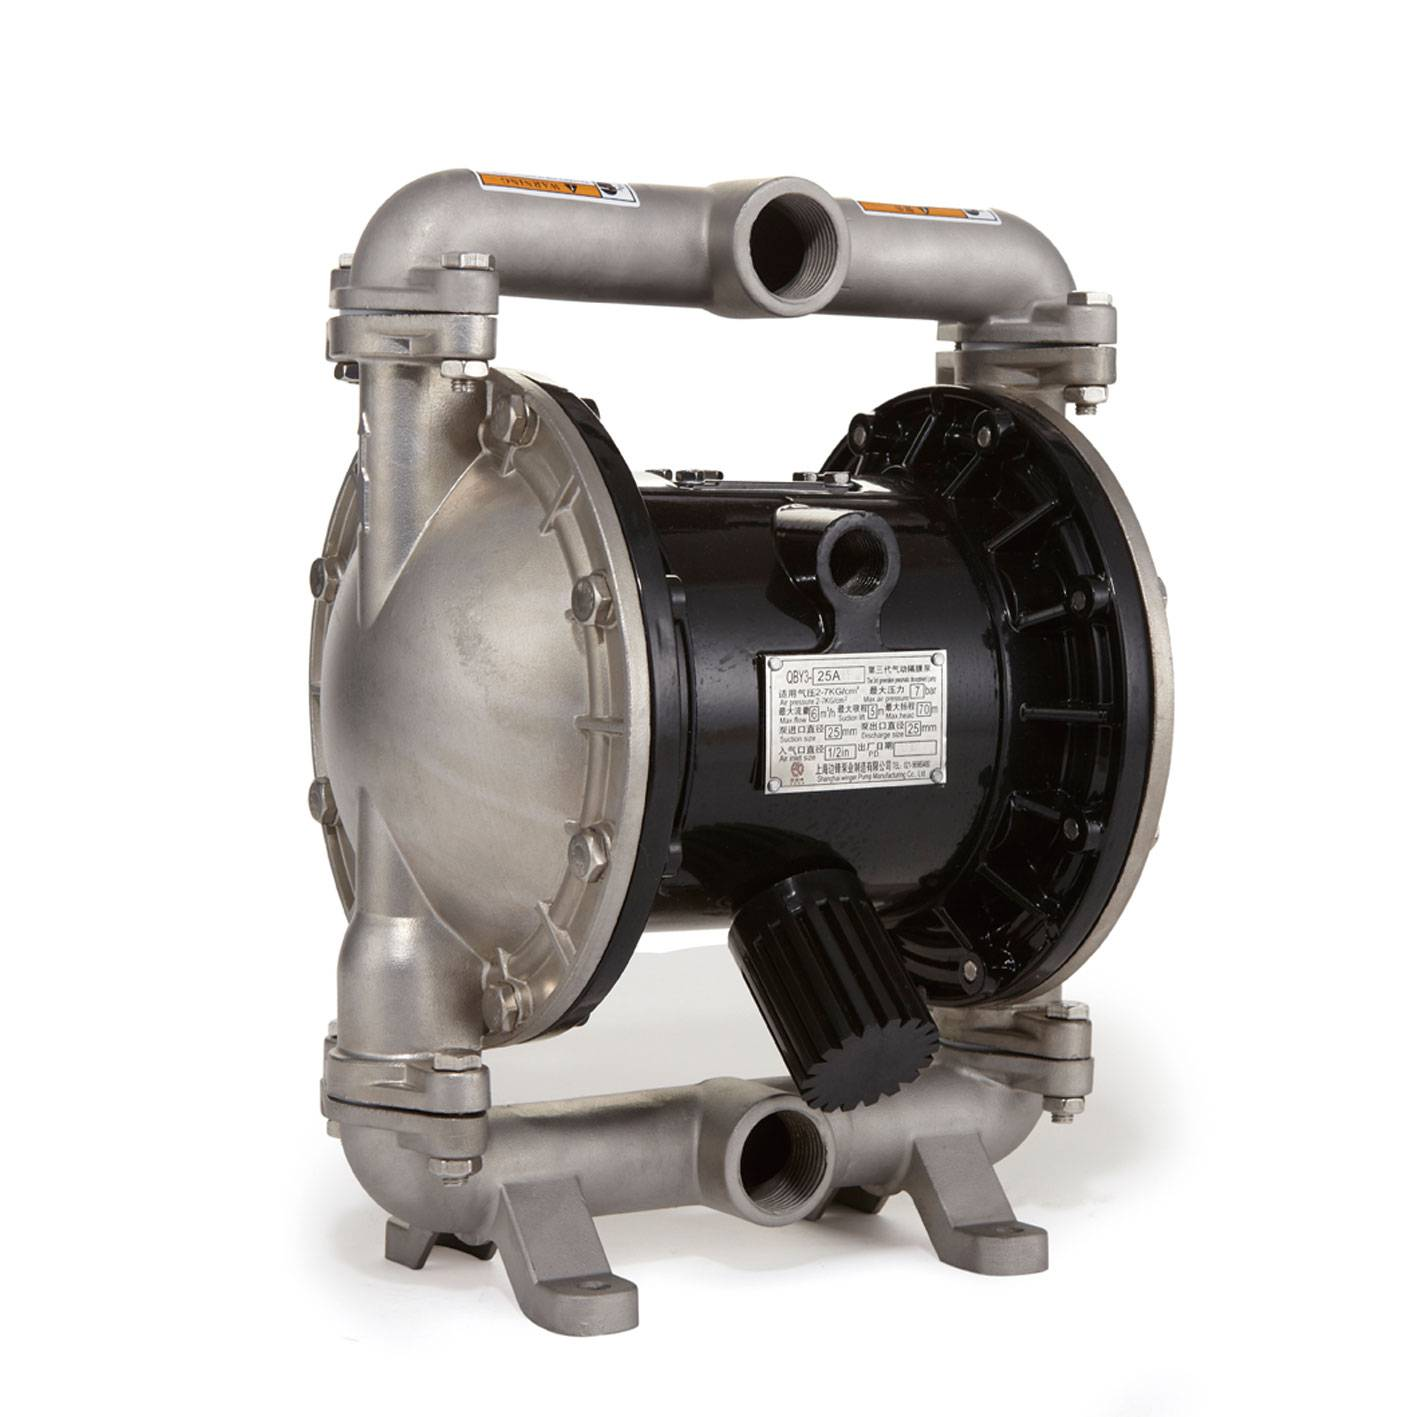 QBY3- 20 / 25 PTFE Air Operated Diaphragm Pump